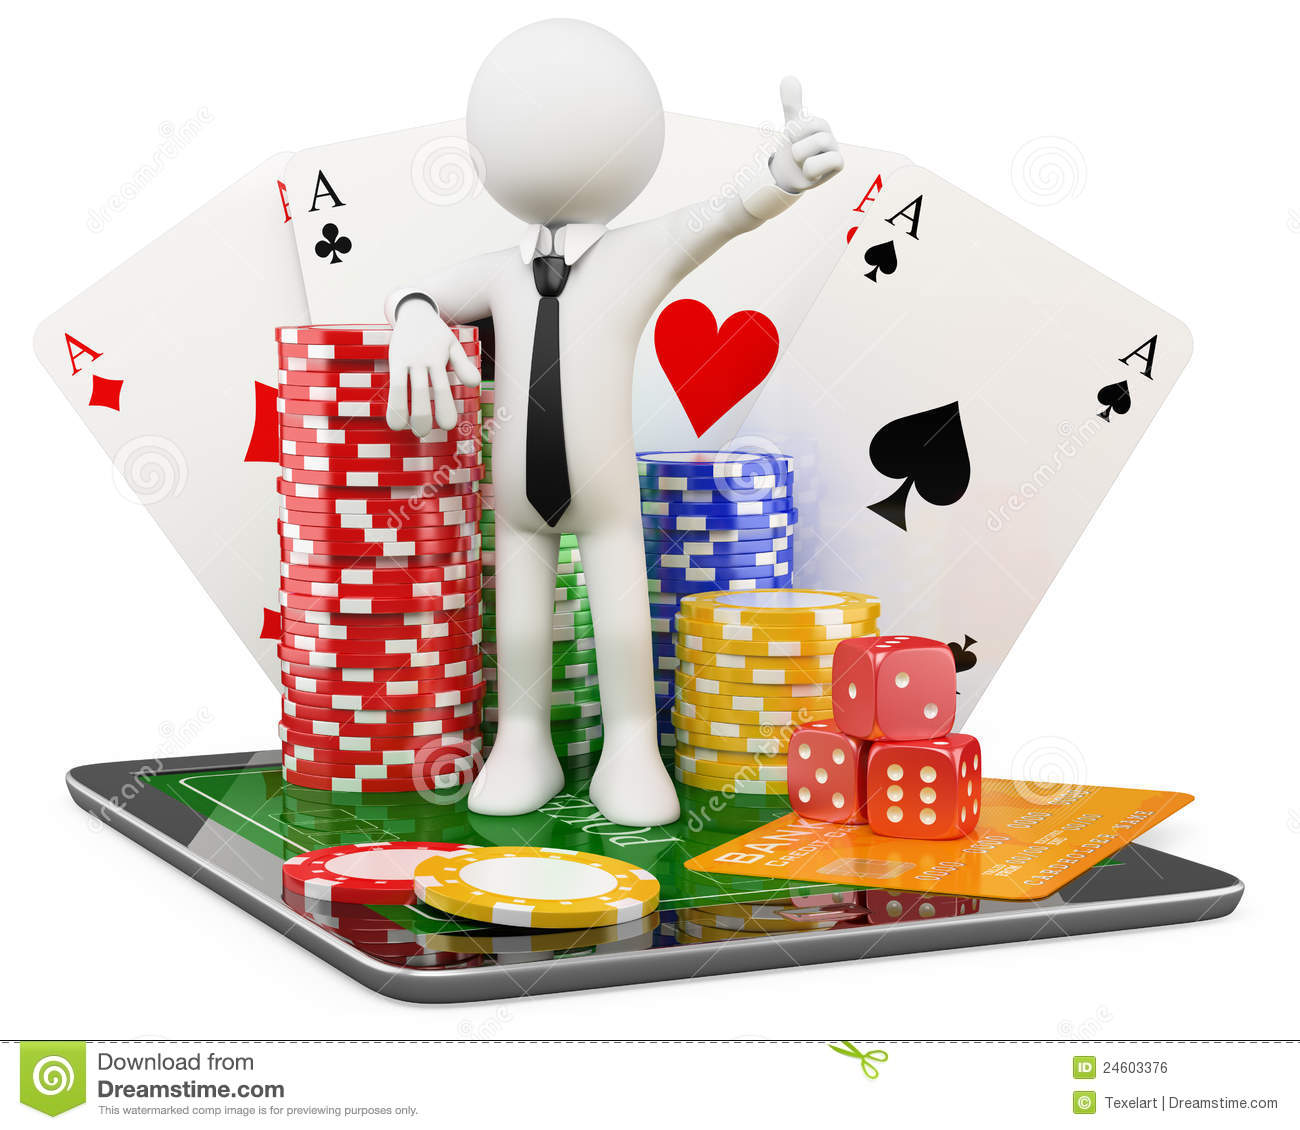 Best South African Casinos for Slots and Games Online